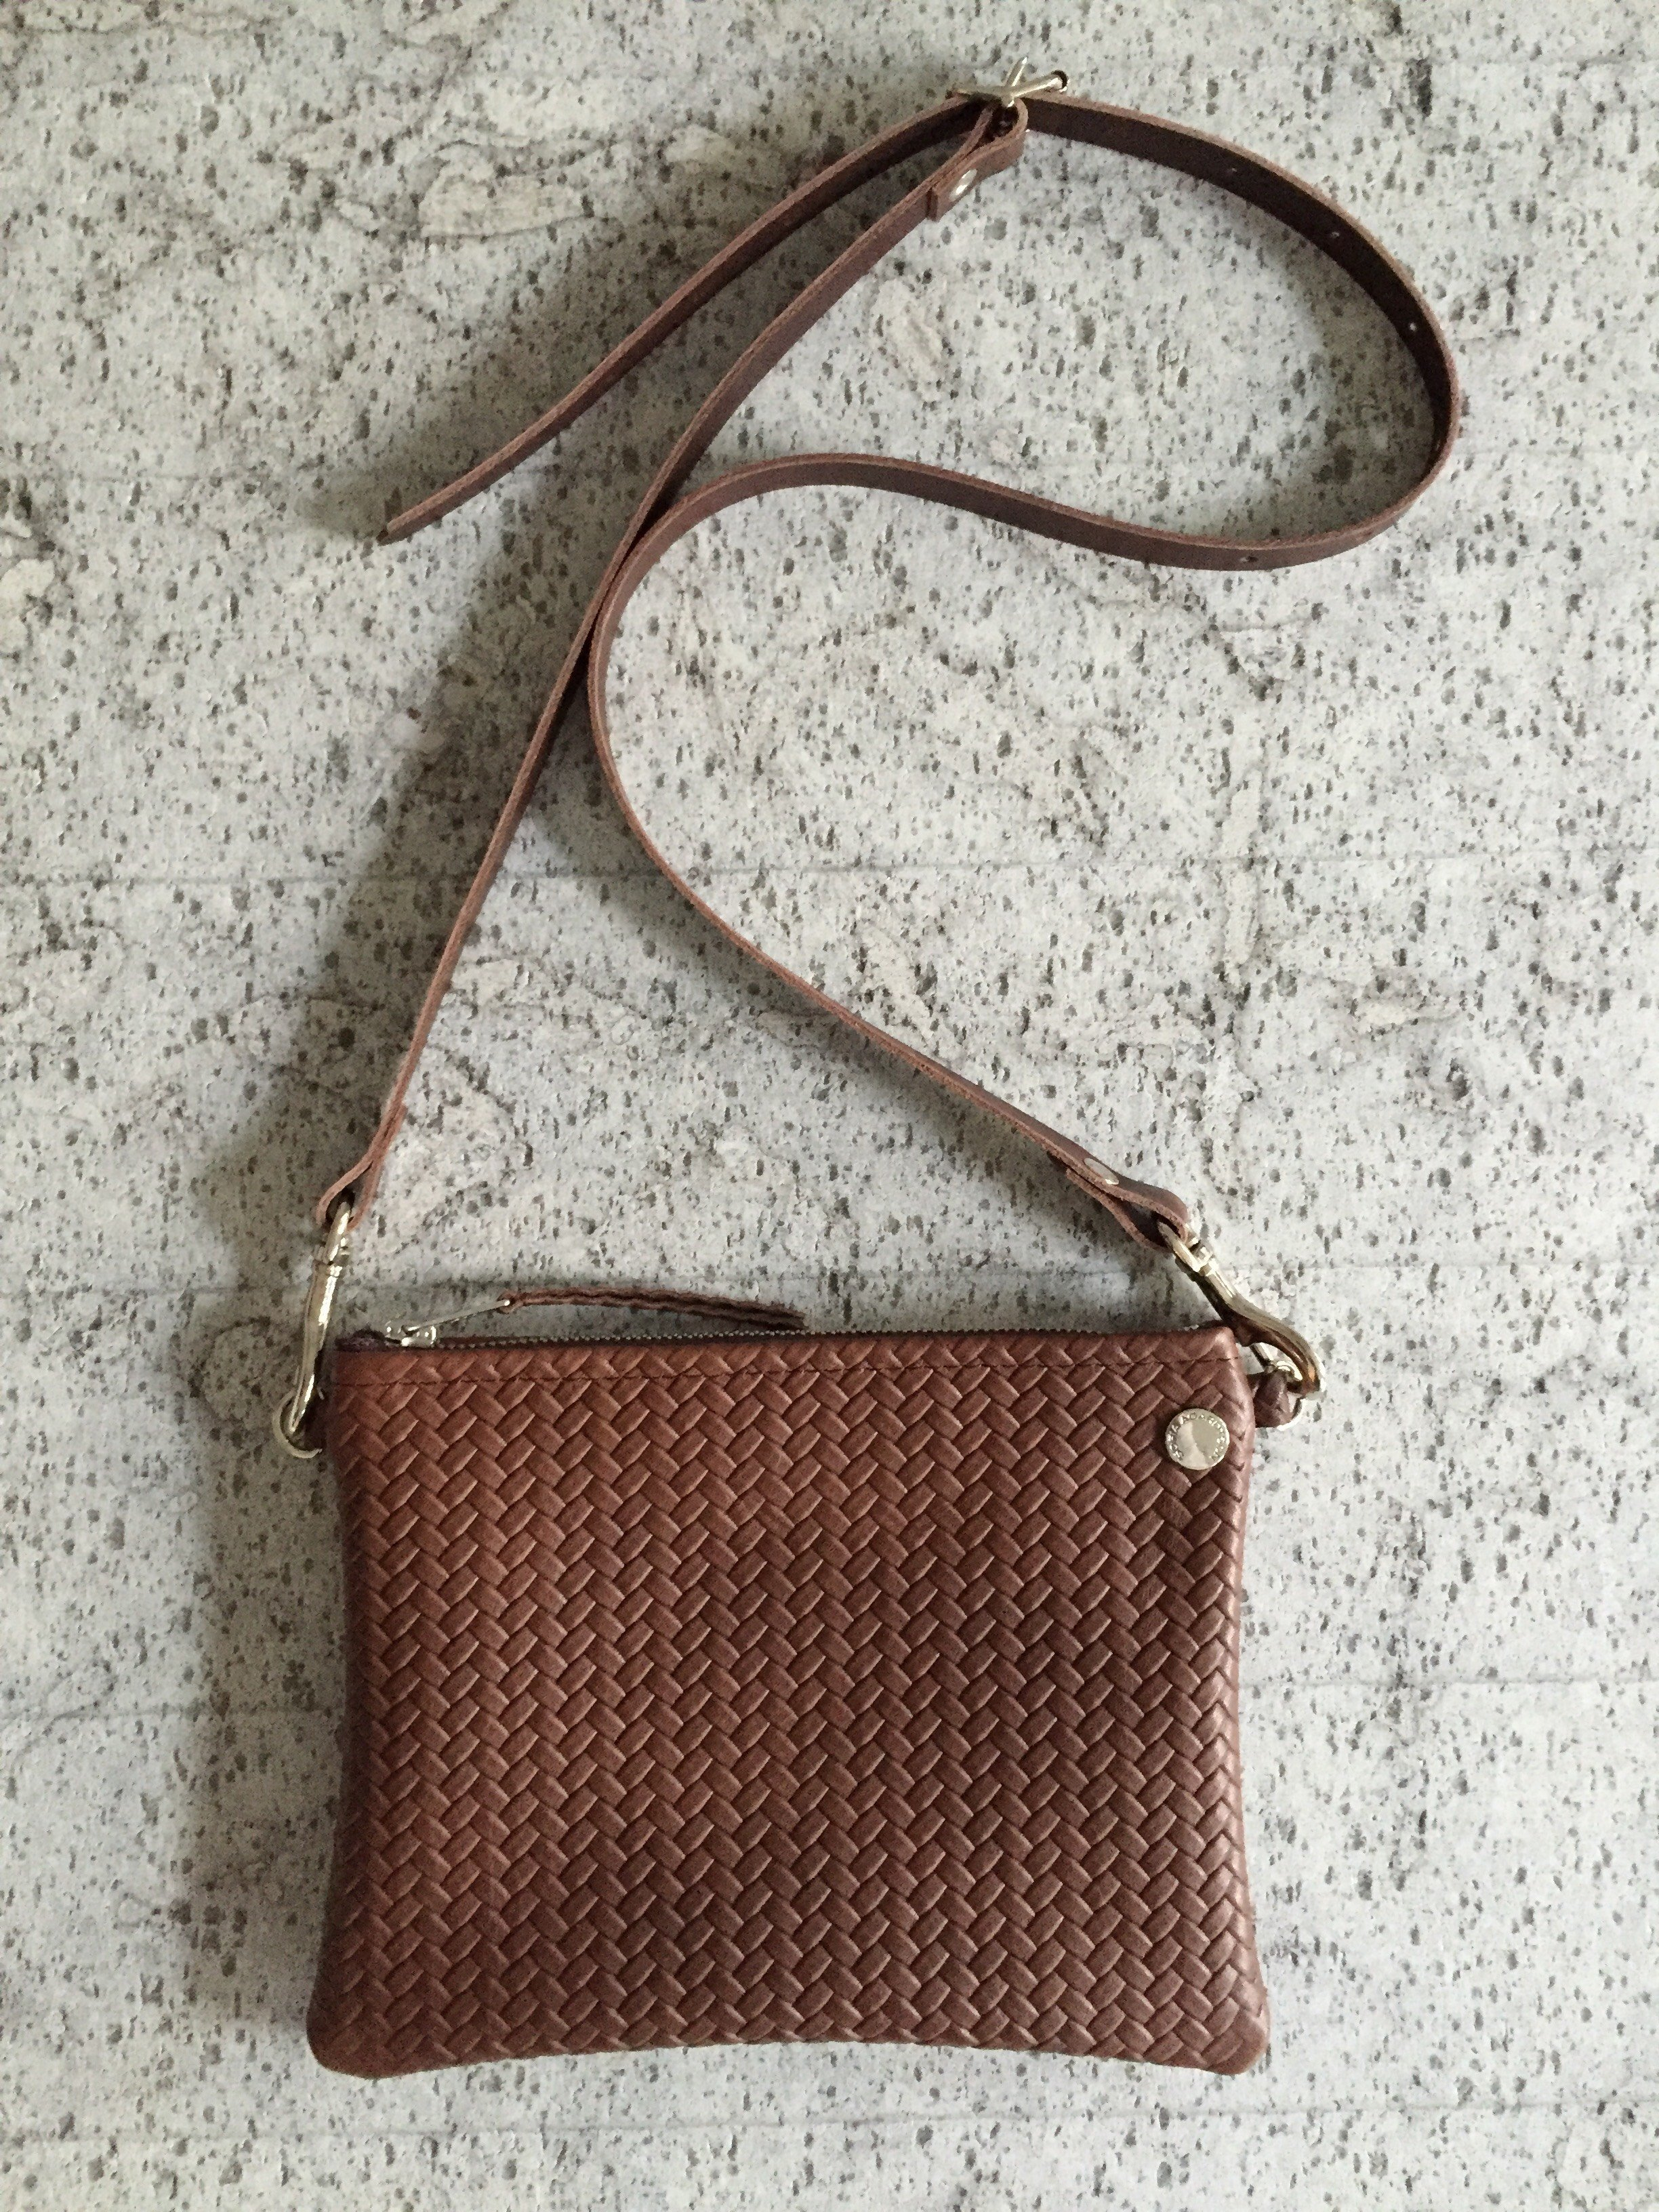 VIP Shoulder Bag - Chocolate Brown Herringbone Leather